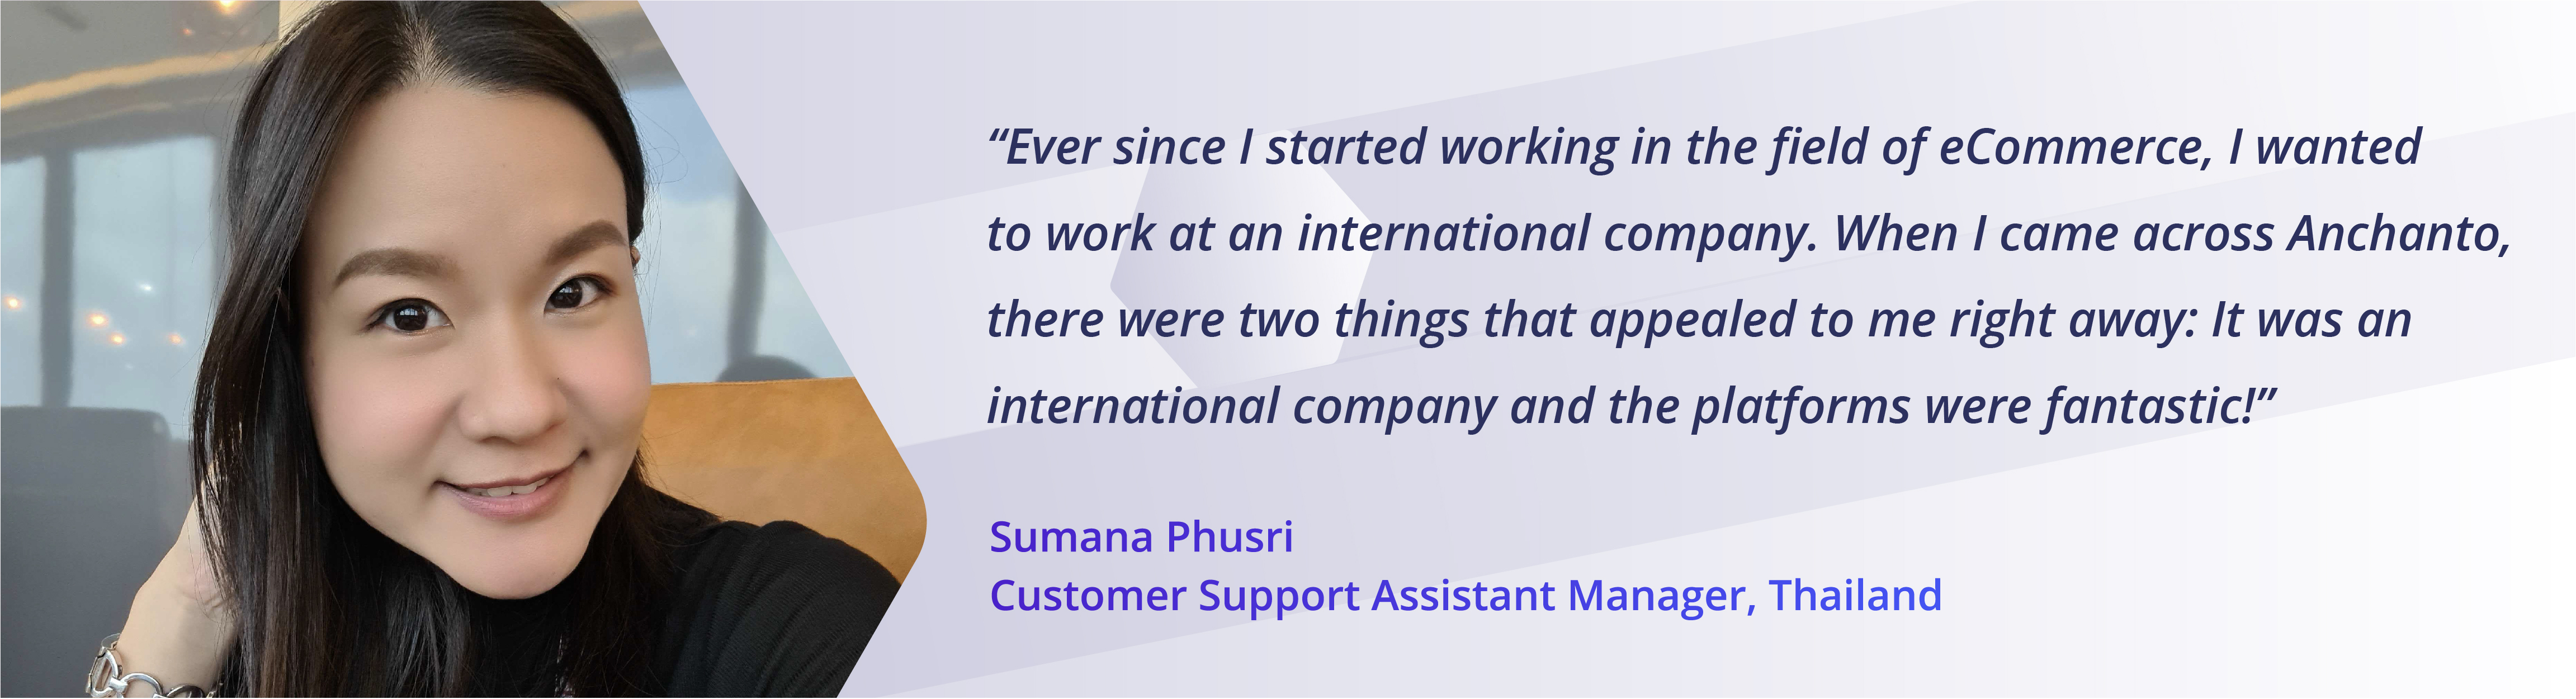 Sumana, Customer Support Manager, Thailand